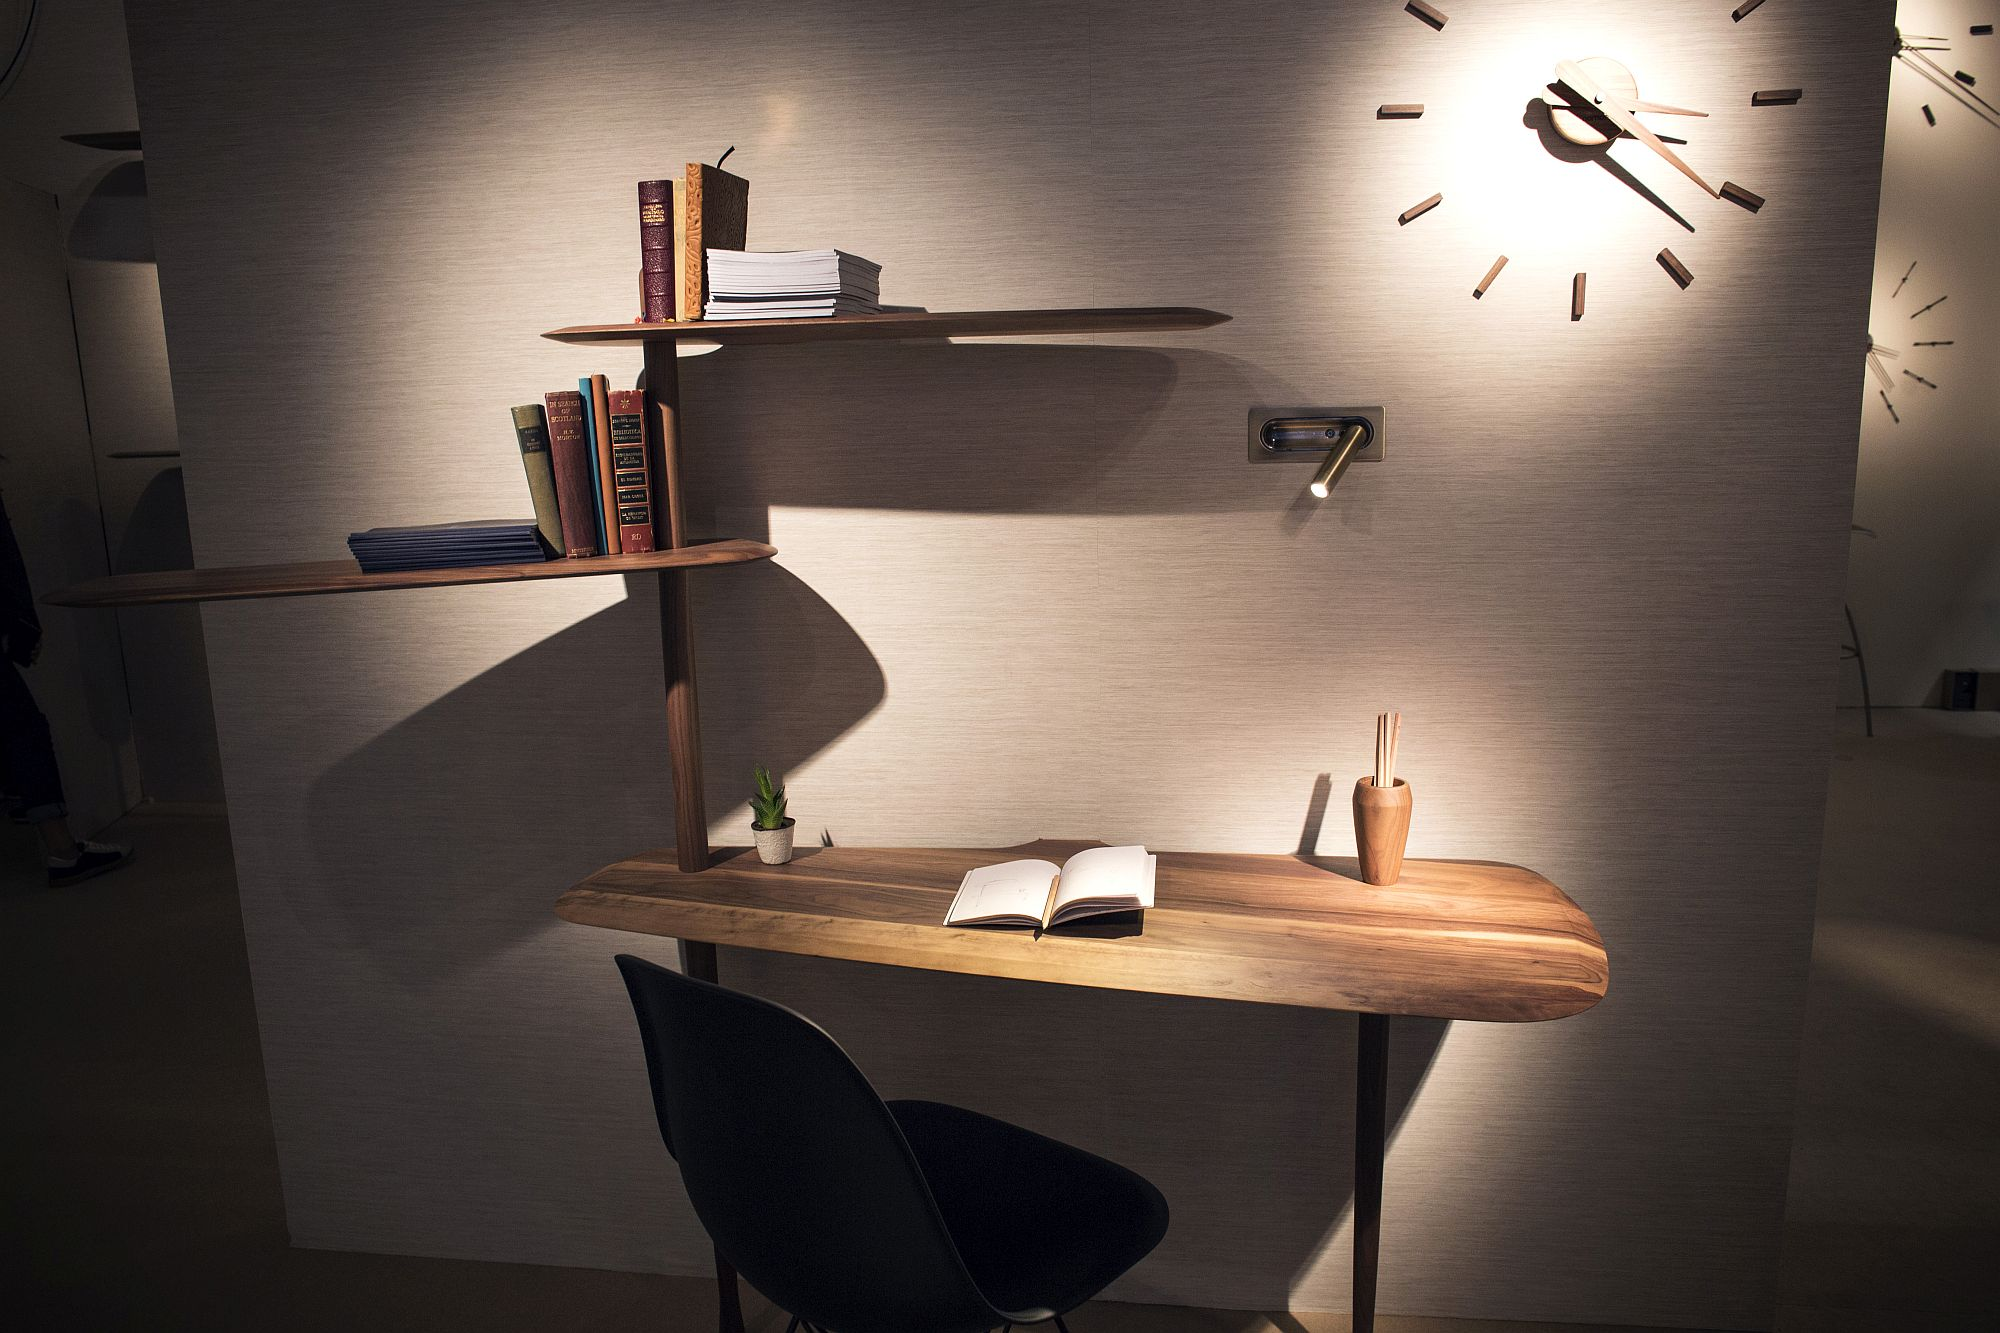 Innovative desk from Unica Collection for the space-savvy workzone